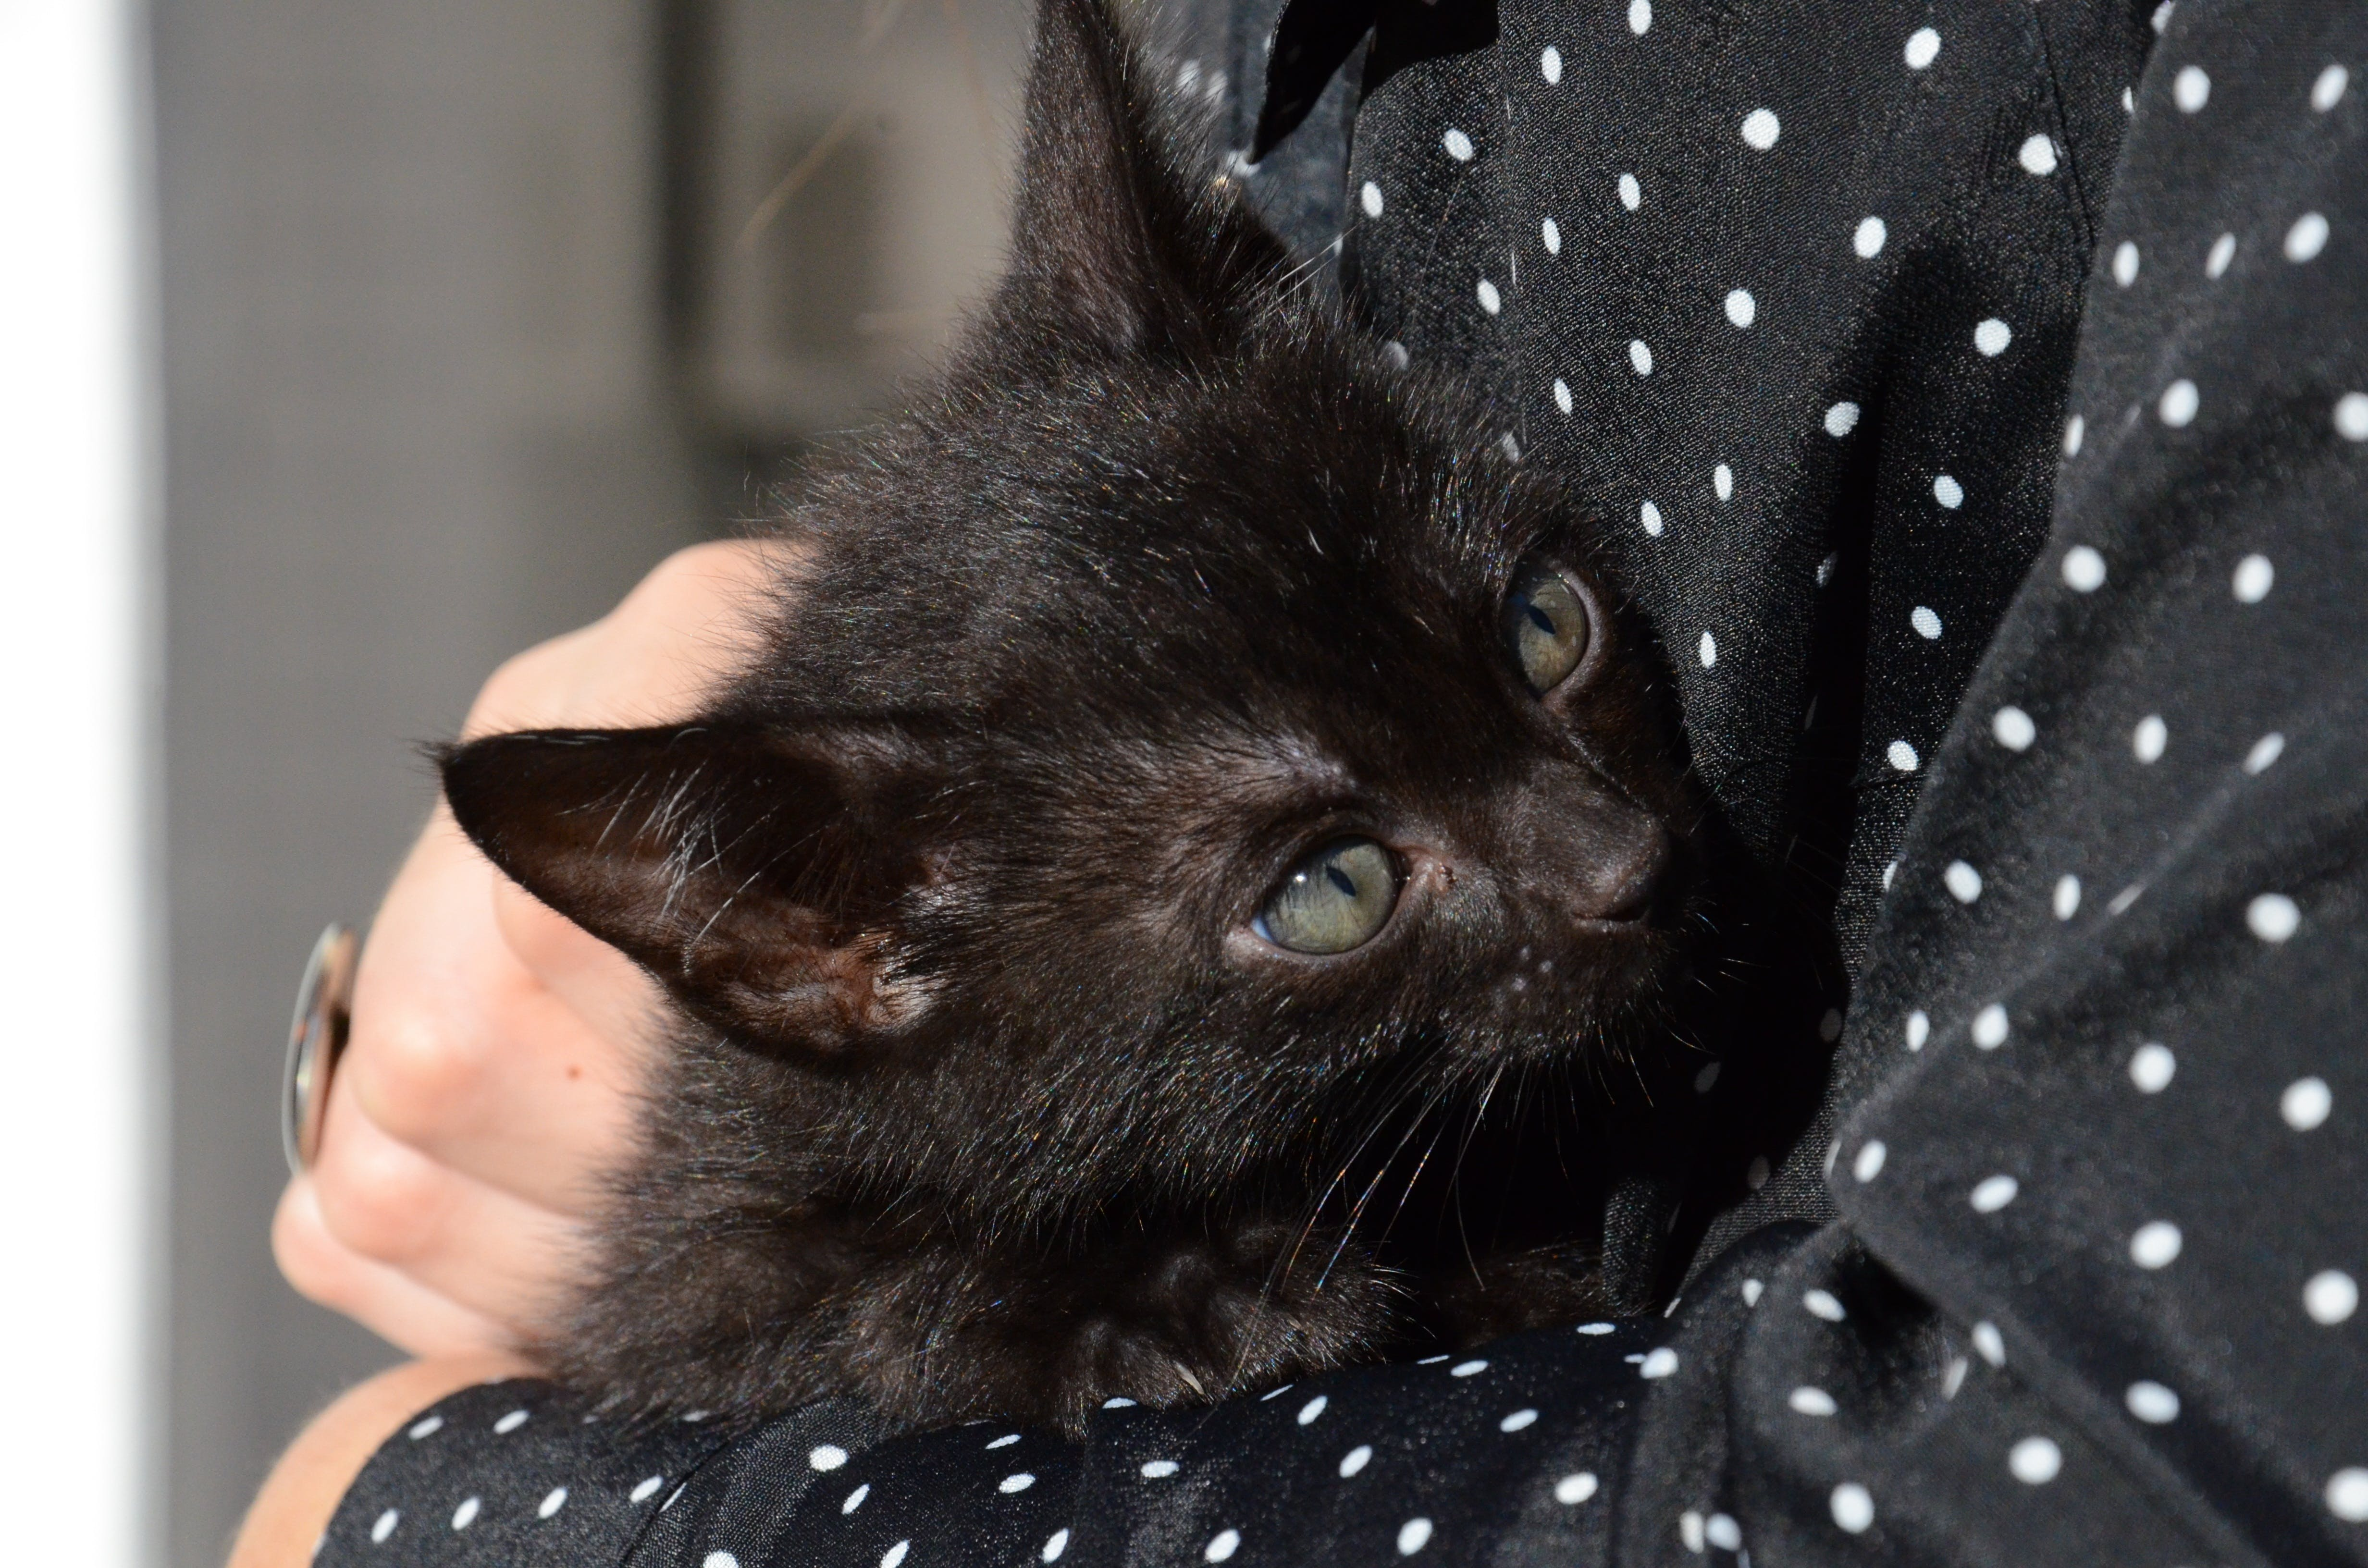 Black Cat on Person's Arm